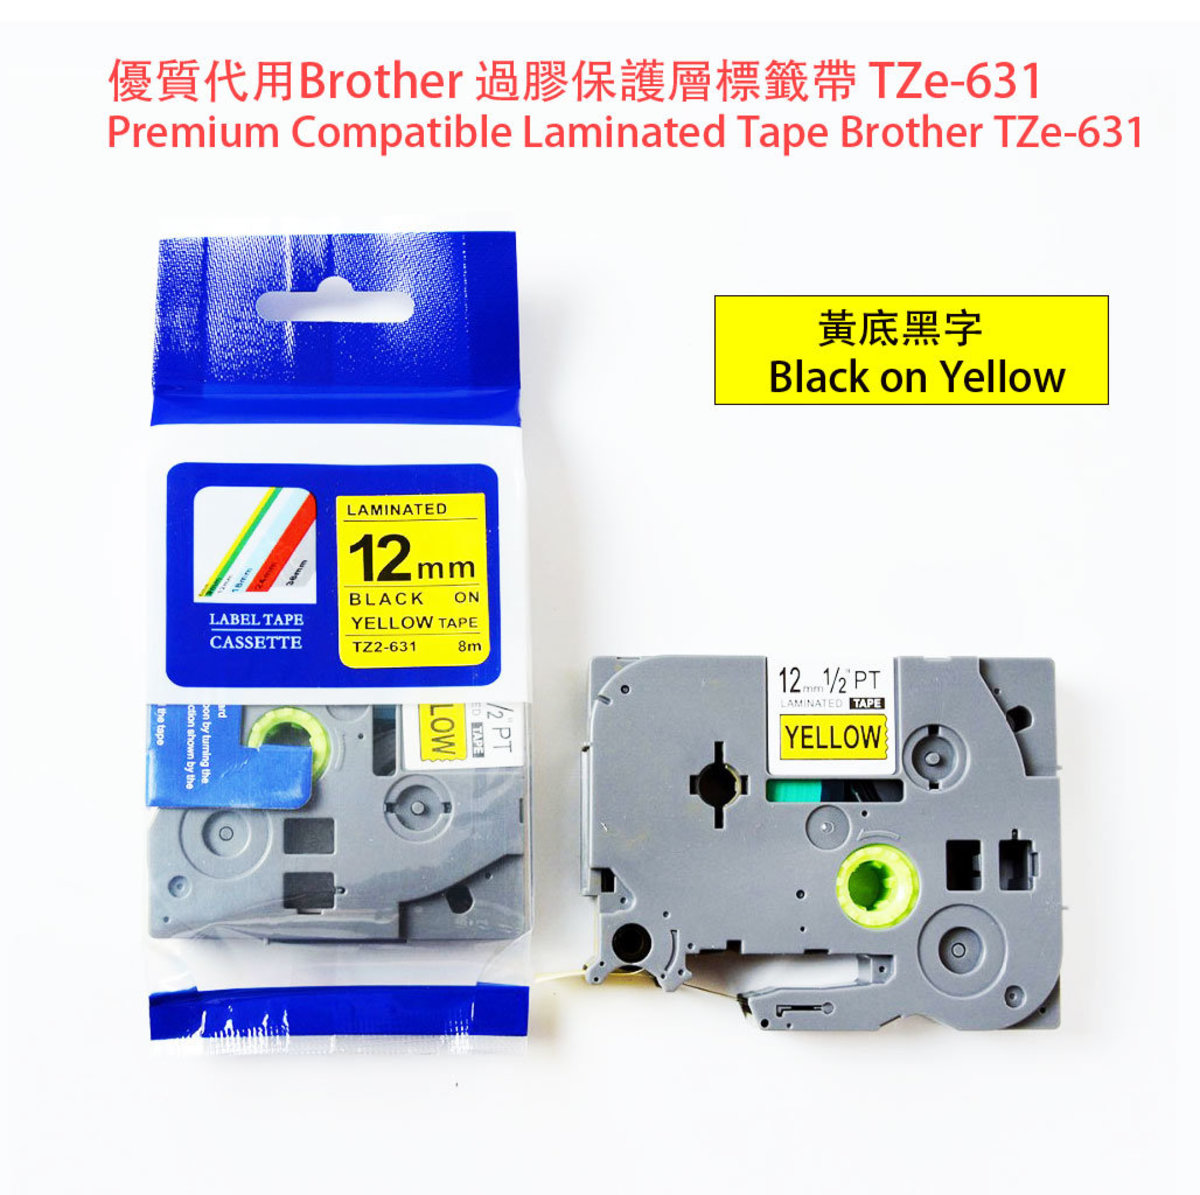 ION Premium Compatible Laminated Tape Brother TZe-631